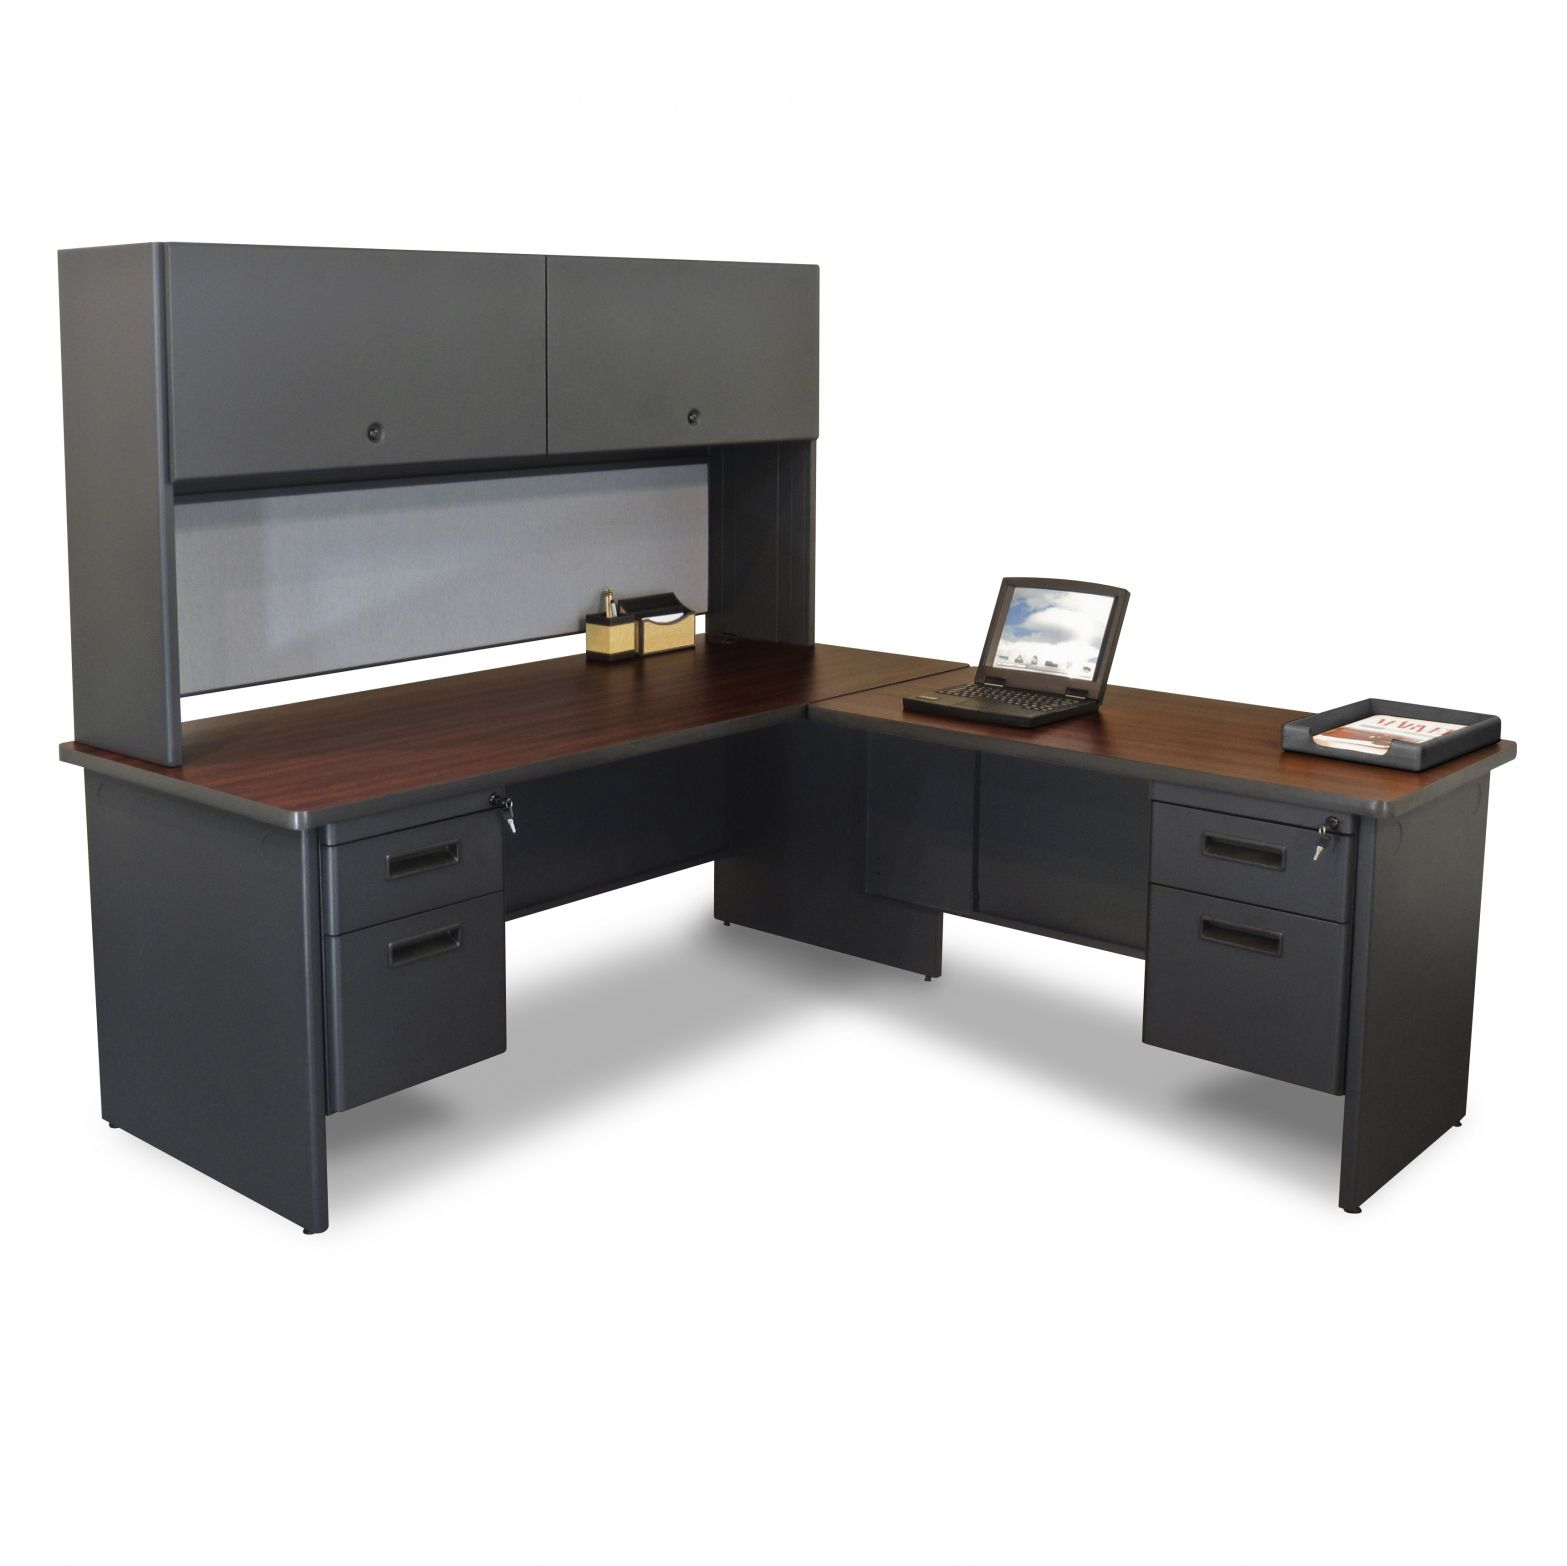 large l shaped office desk. 99+ Office Desk With Hutch L-shaped - Large Home Furniture Check More L Shaped O